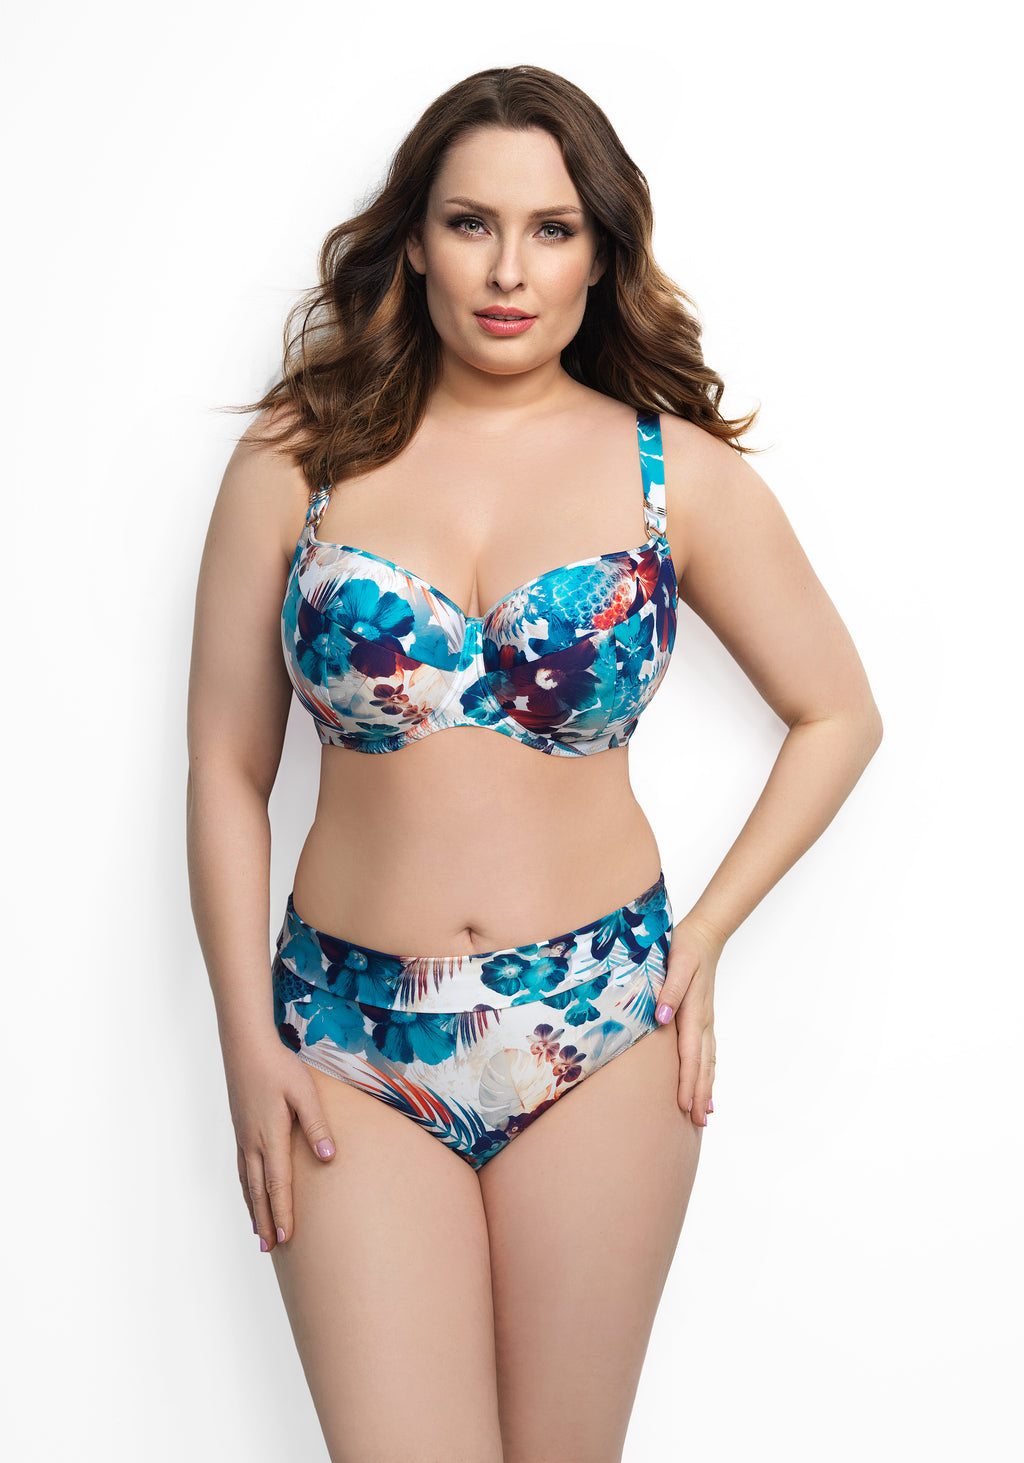 Ikaria by Corin Swimwear | Full Cup Bikini Top Floral - Lalingerie.ca, Canada, lingerie, swimwear, one piece, bikini, bikini top, bikini bottom, bodysuit, Corin, Corin lingerie, Corin swimwear, free shipping across canada with purchase over $75 + tax